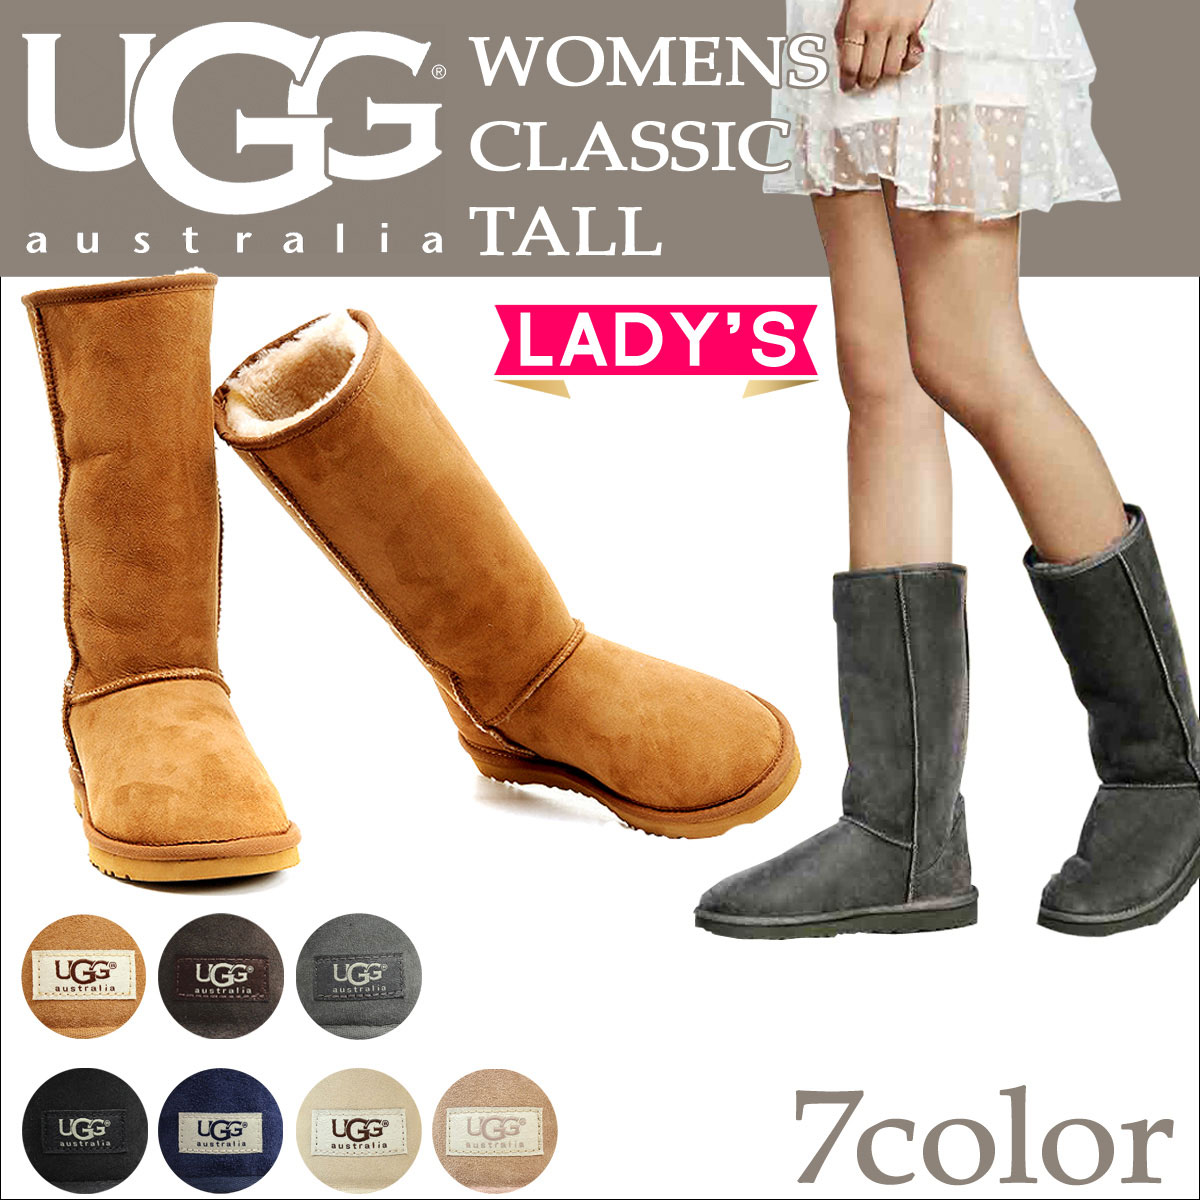 7a1141eedca40 Whats up Sports  UGG Ugg Classic Tall Sheepskin boots WOMENS CLASSIC ...